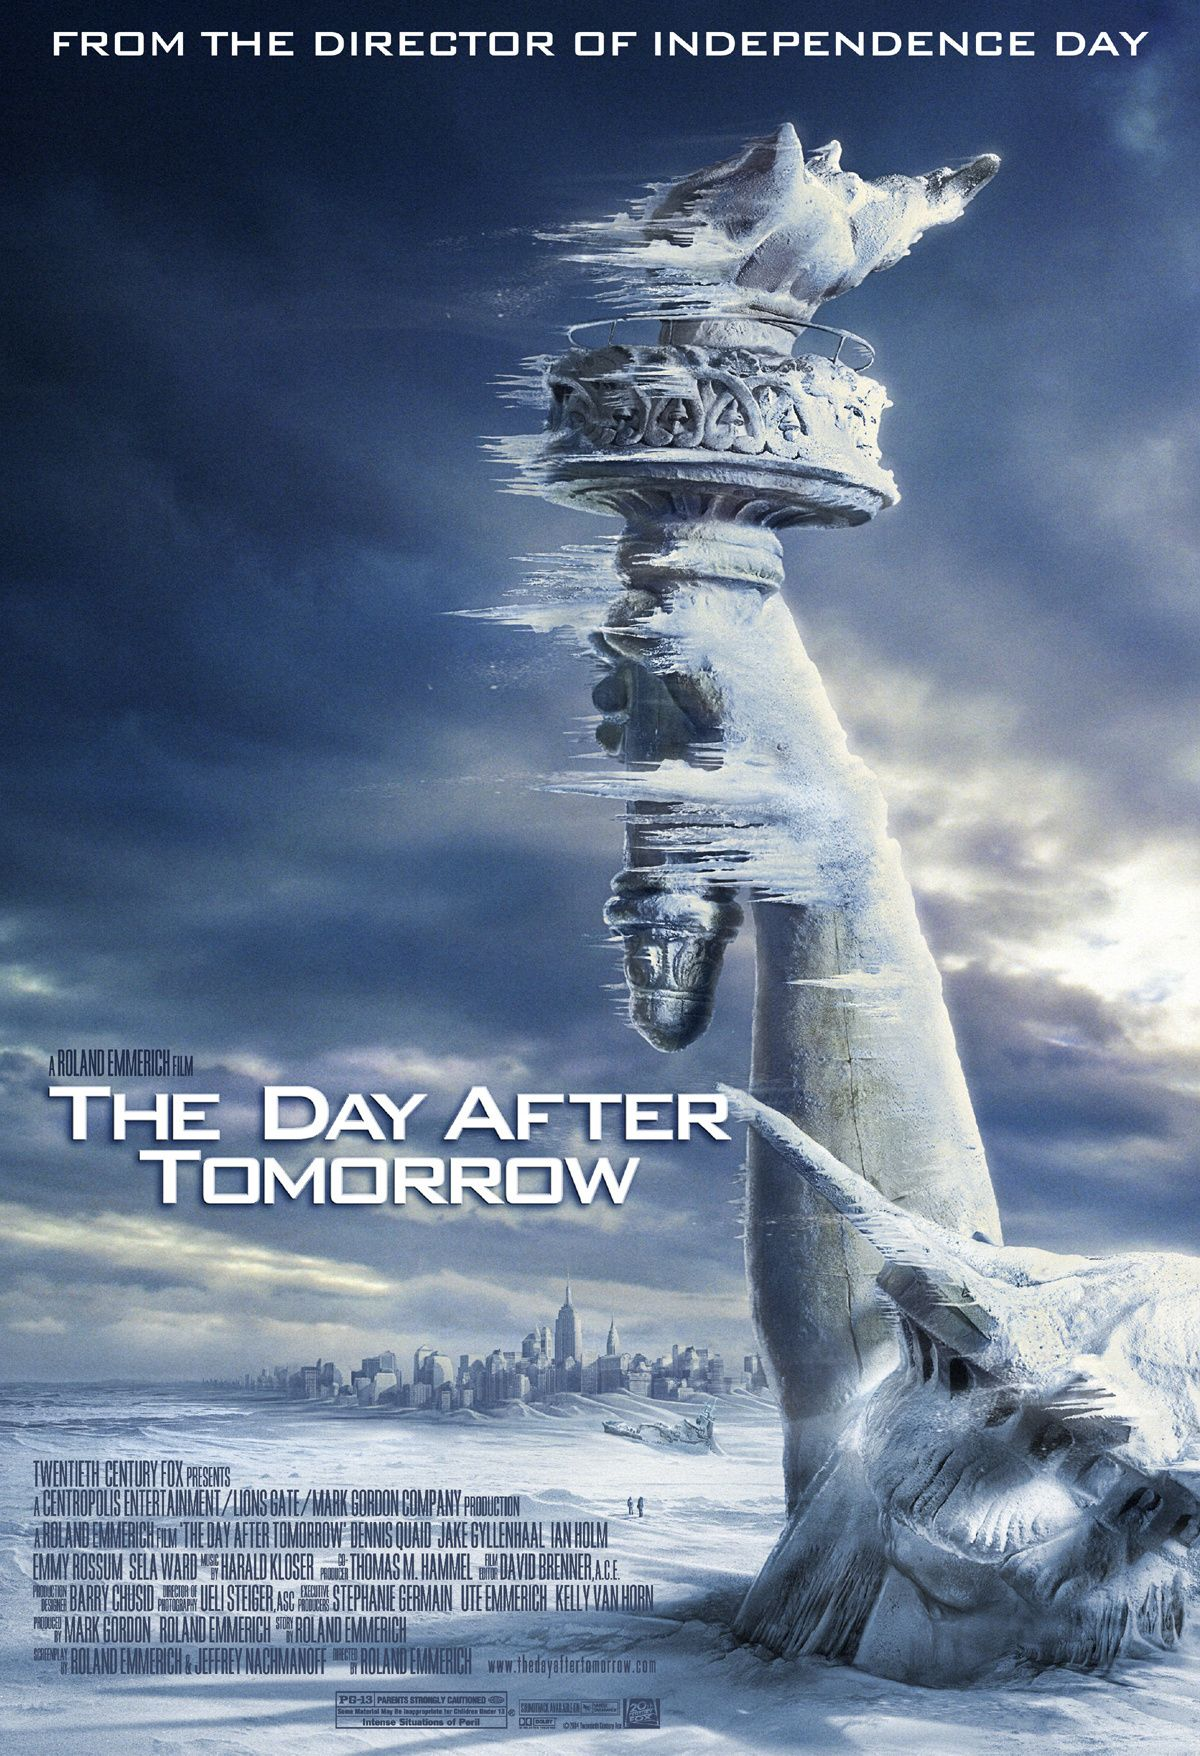 The Day After Tomorrow 2004 Movie Review Streaming Movies Good Movies Movies